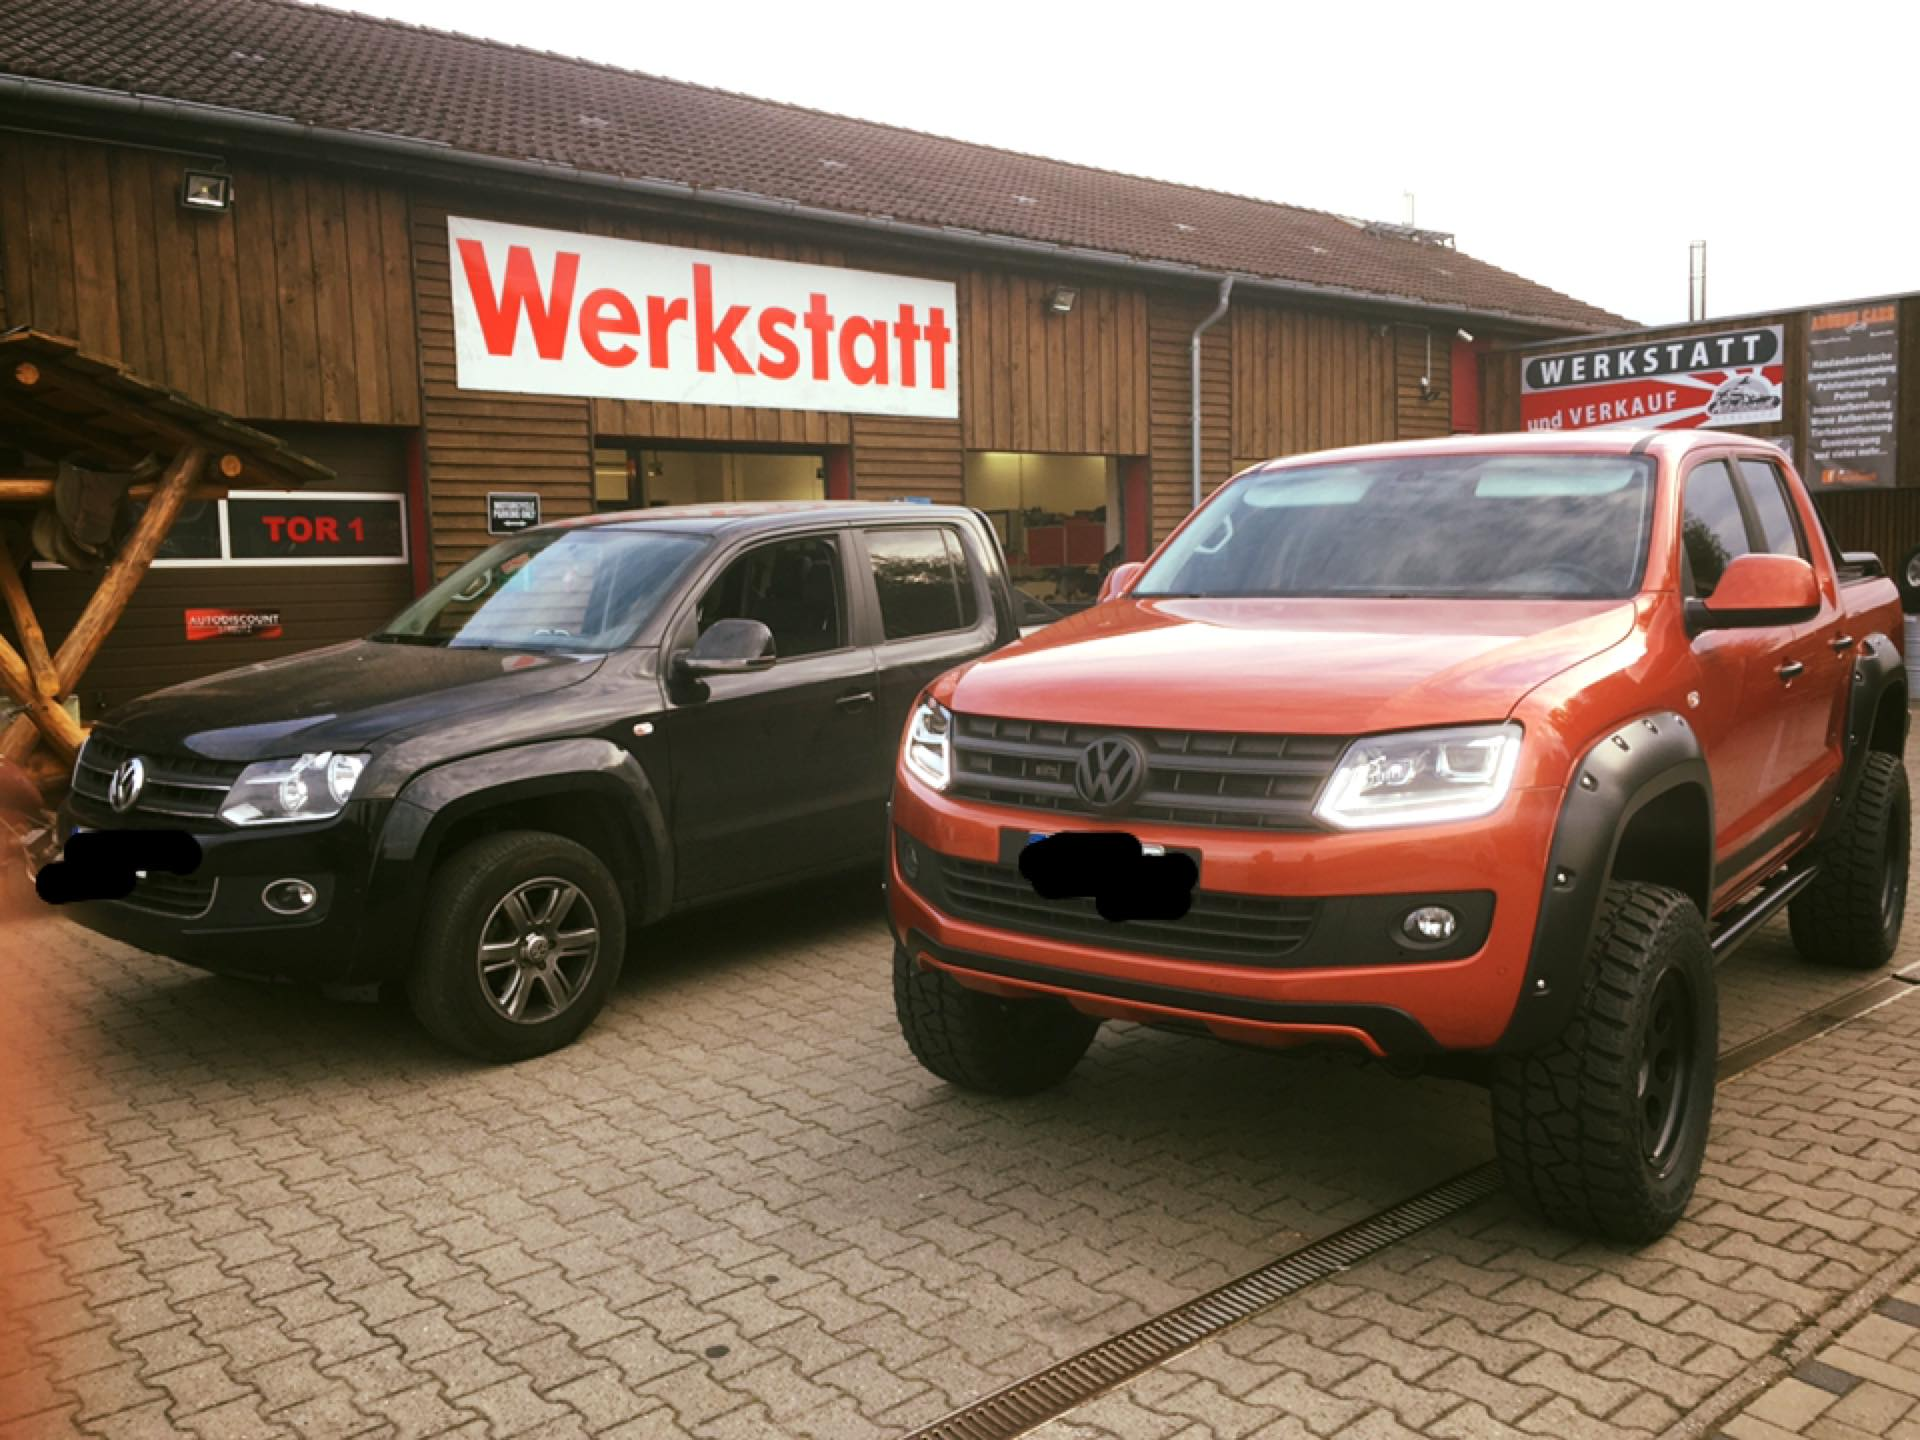 Volkswagen Amarok conversion